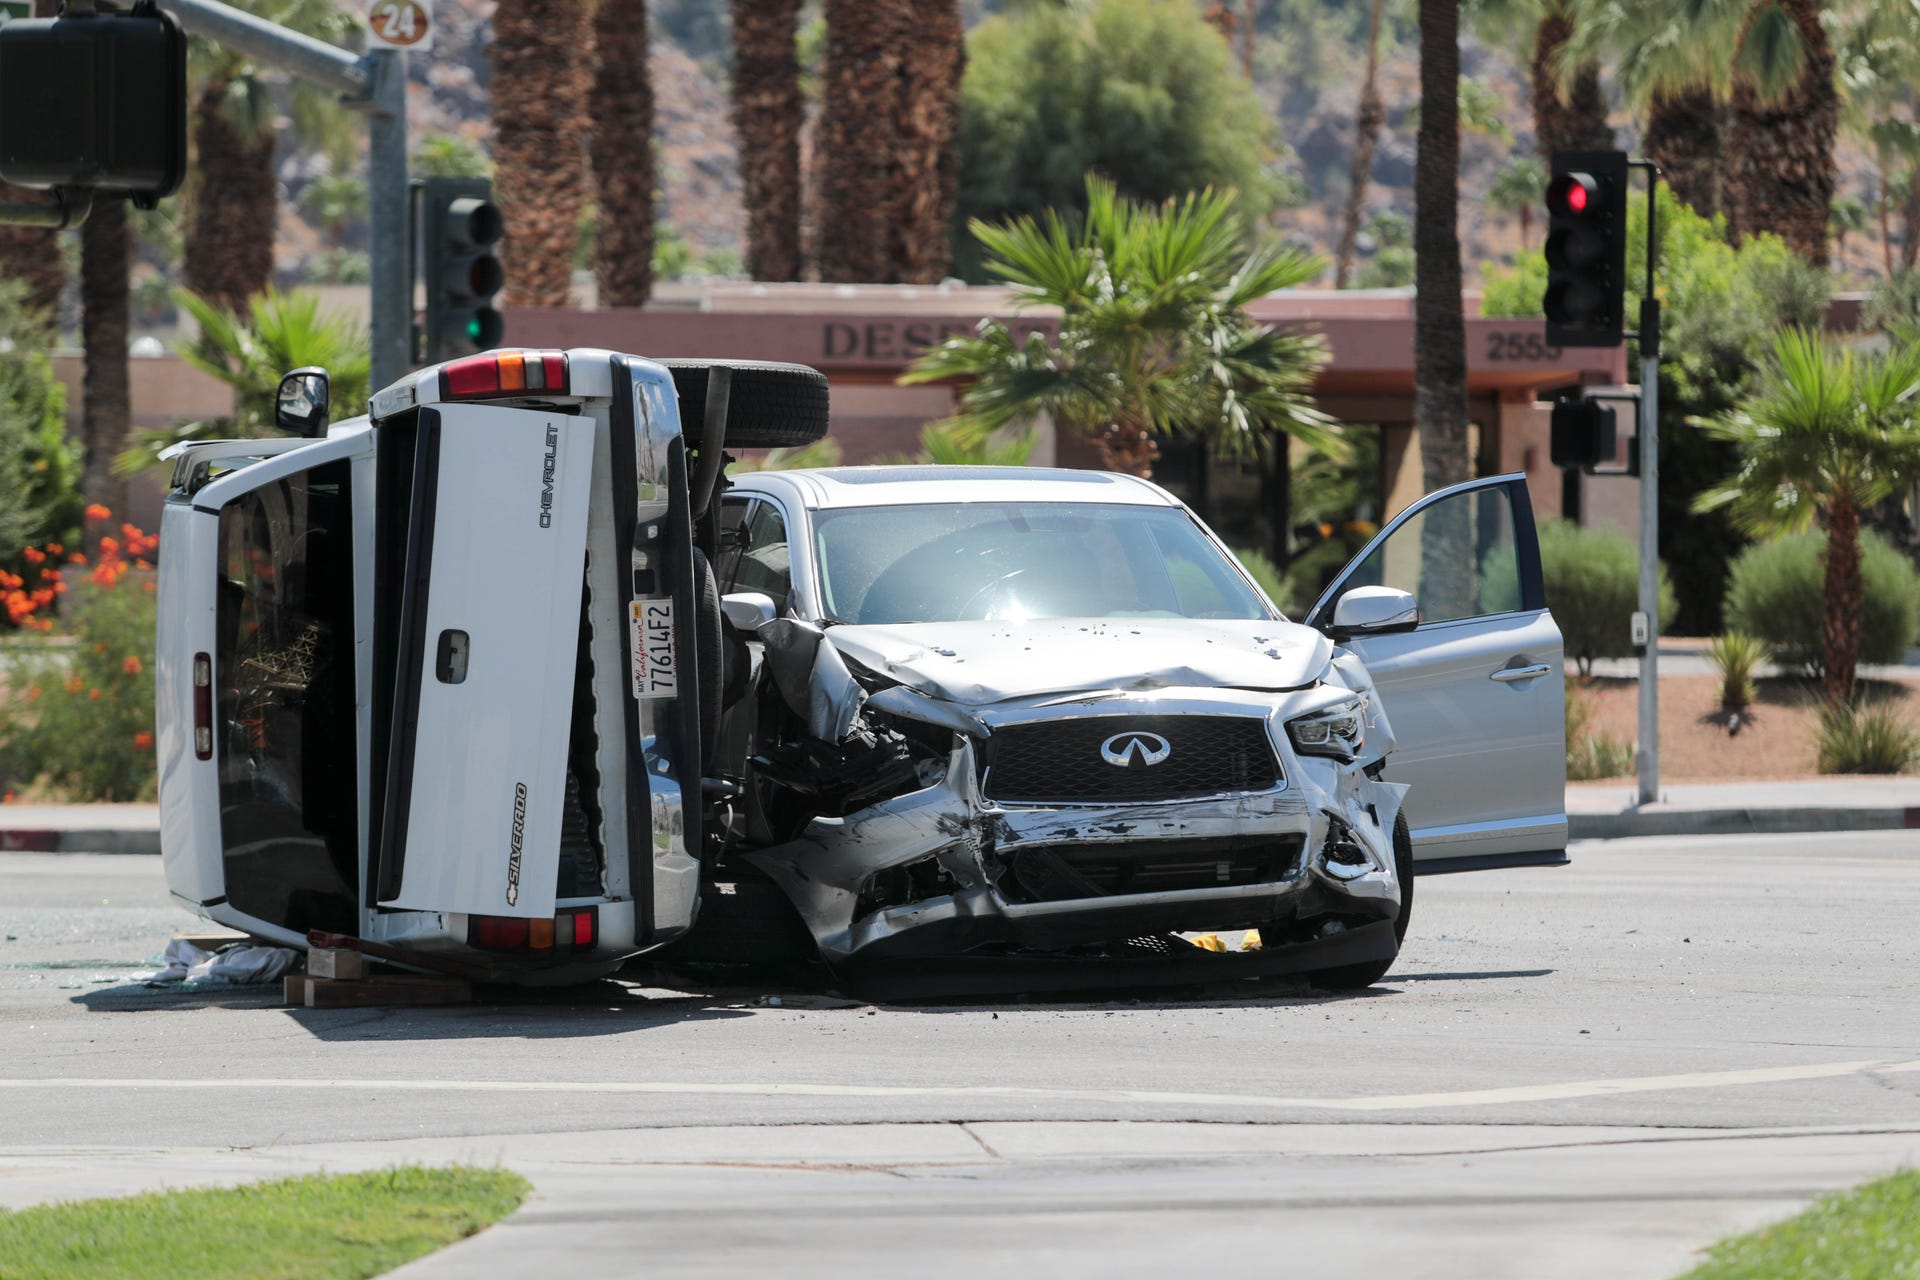 Photos: Two-car collision closes part of East Palm Canyon Drive